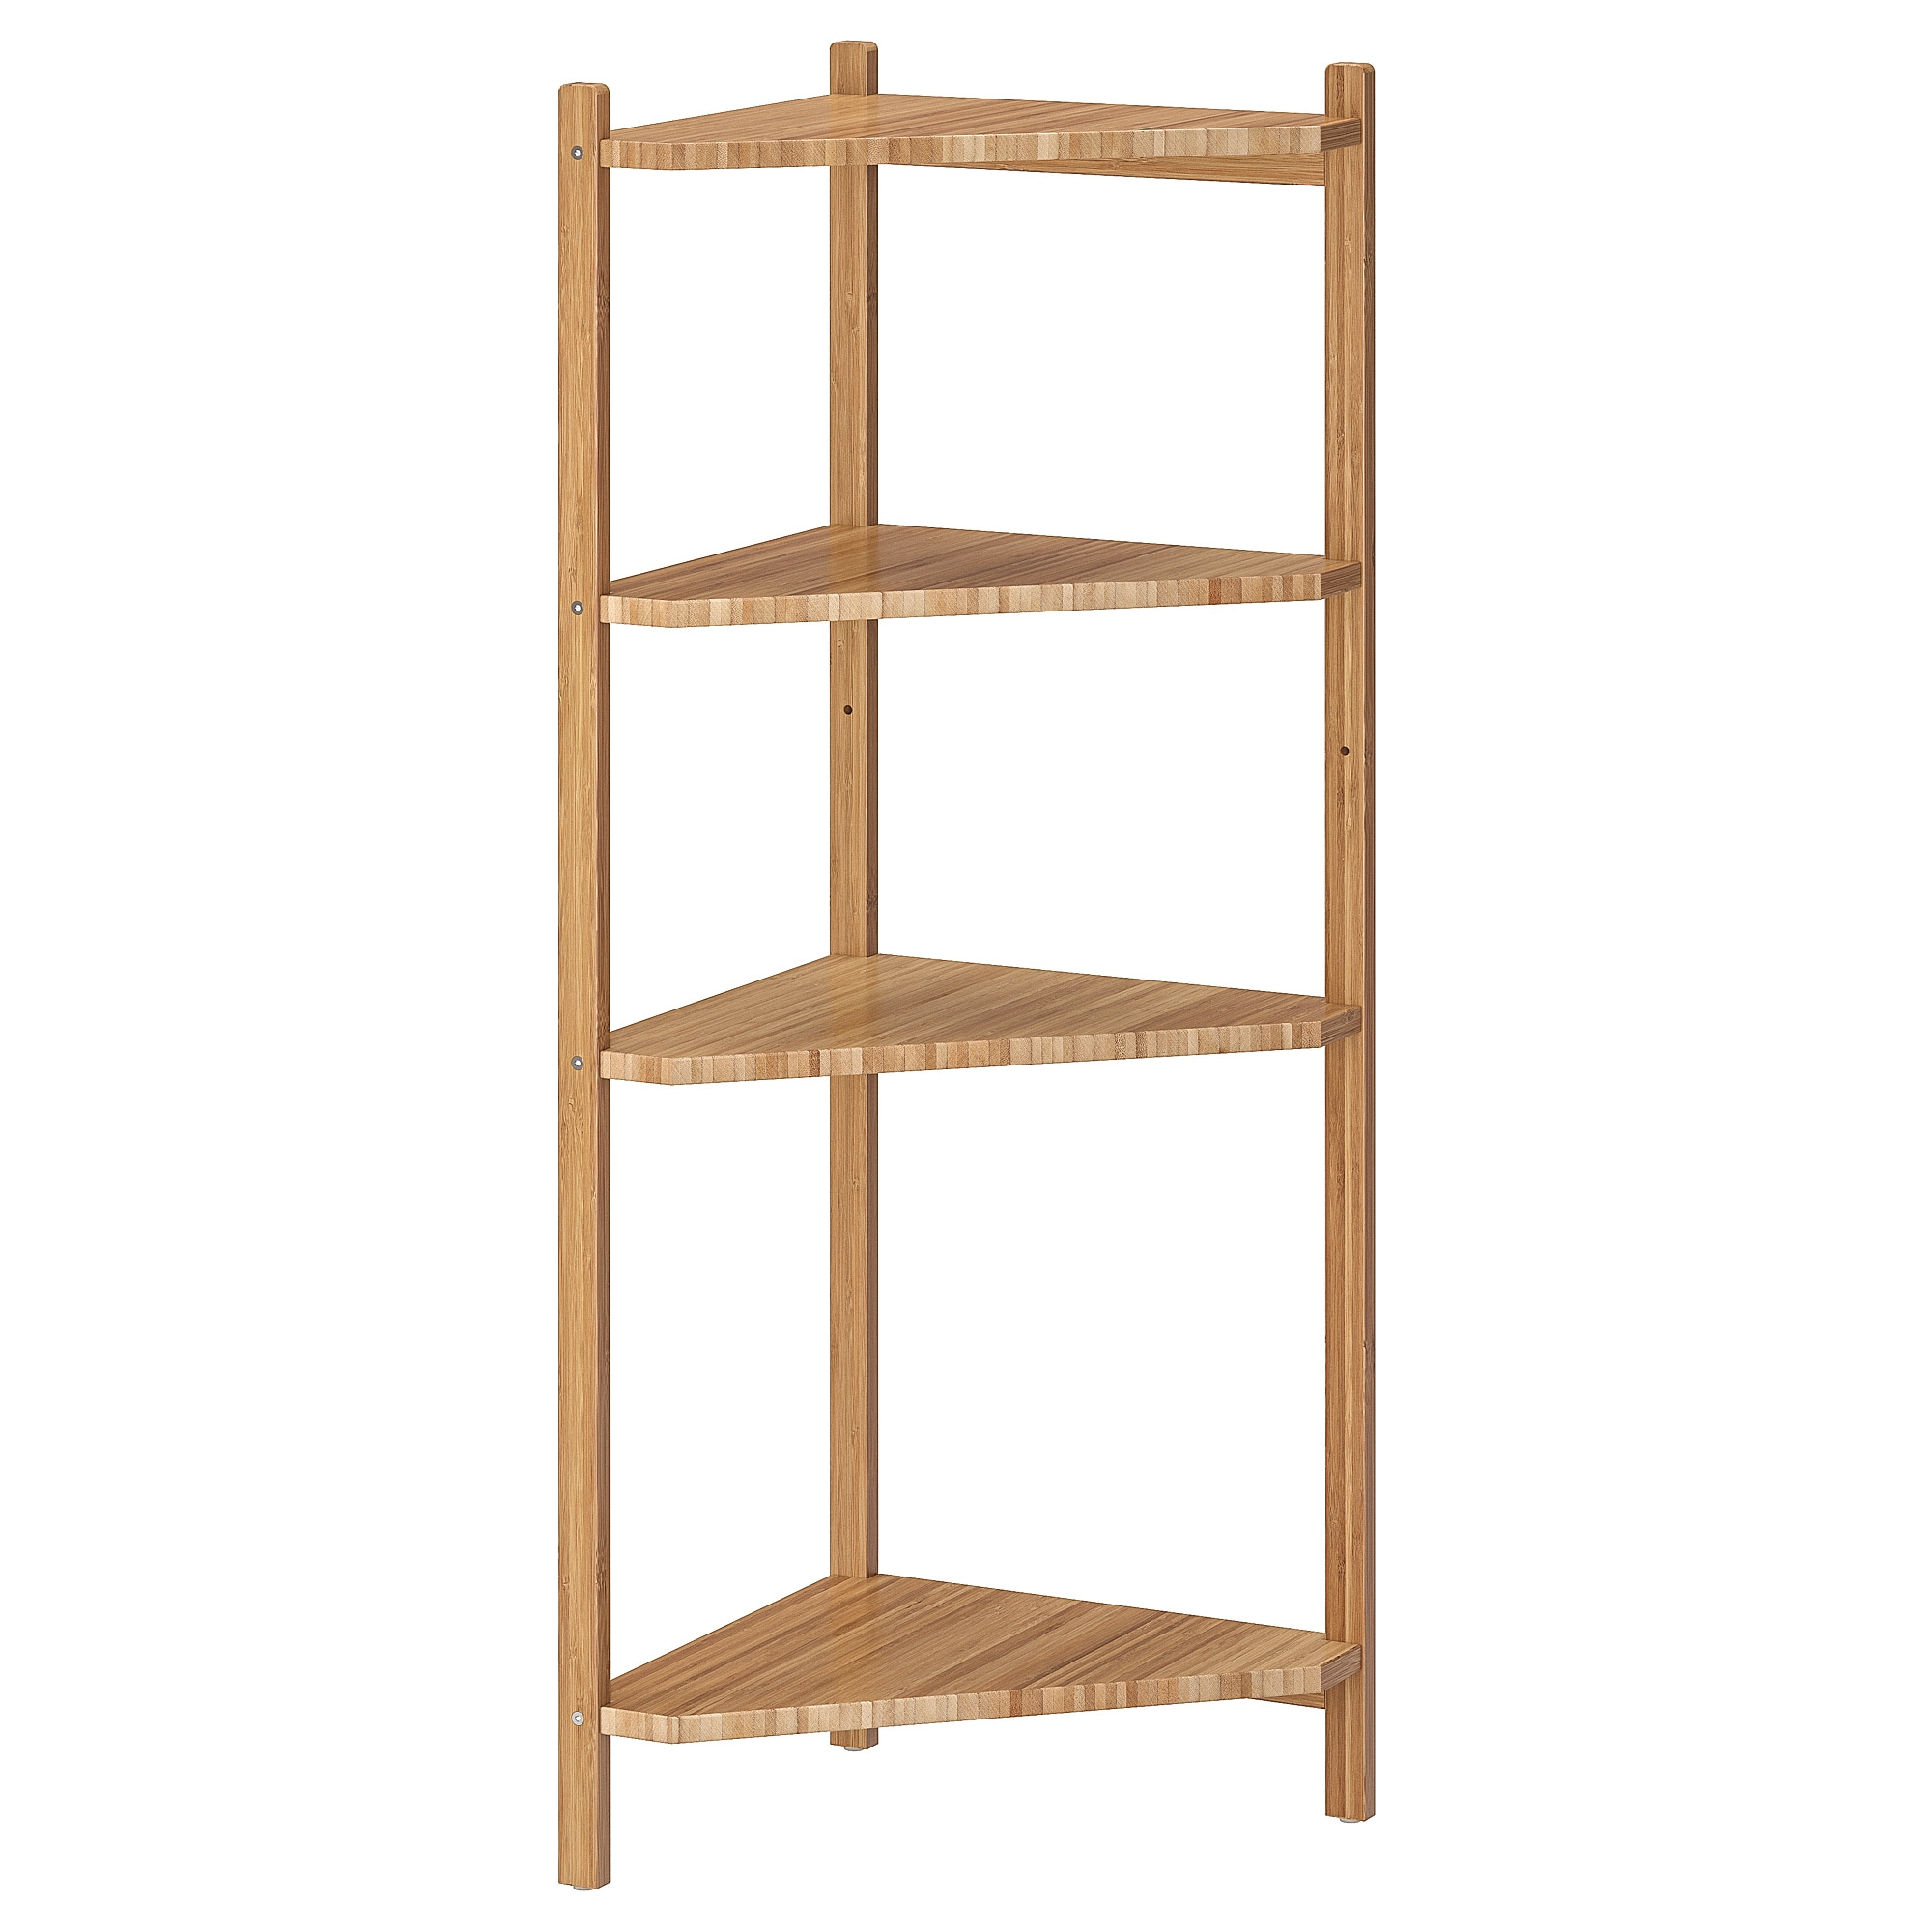 Ragrund Corner Shelf Unit Bamboo 34x99 Cm